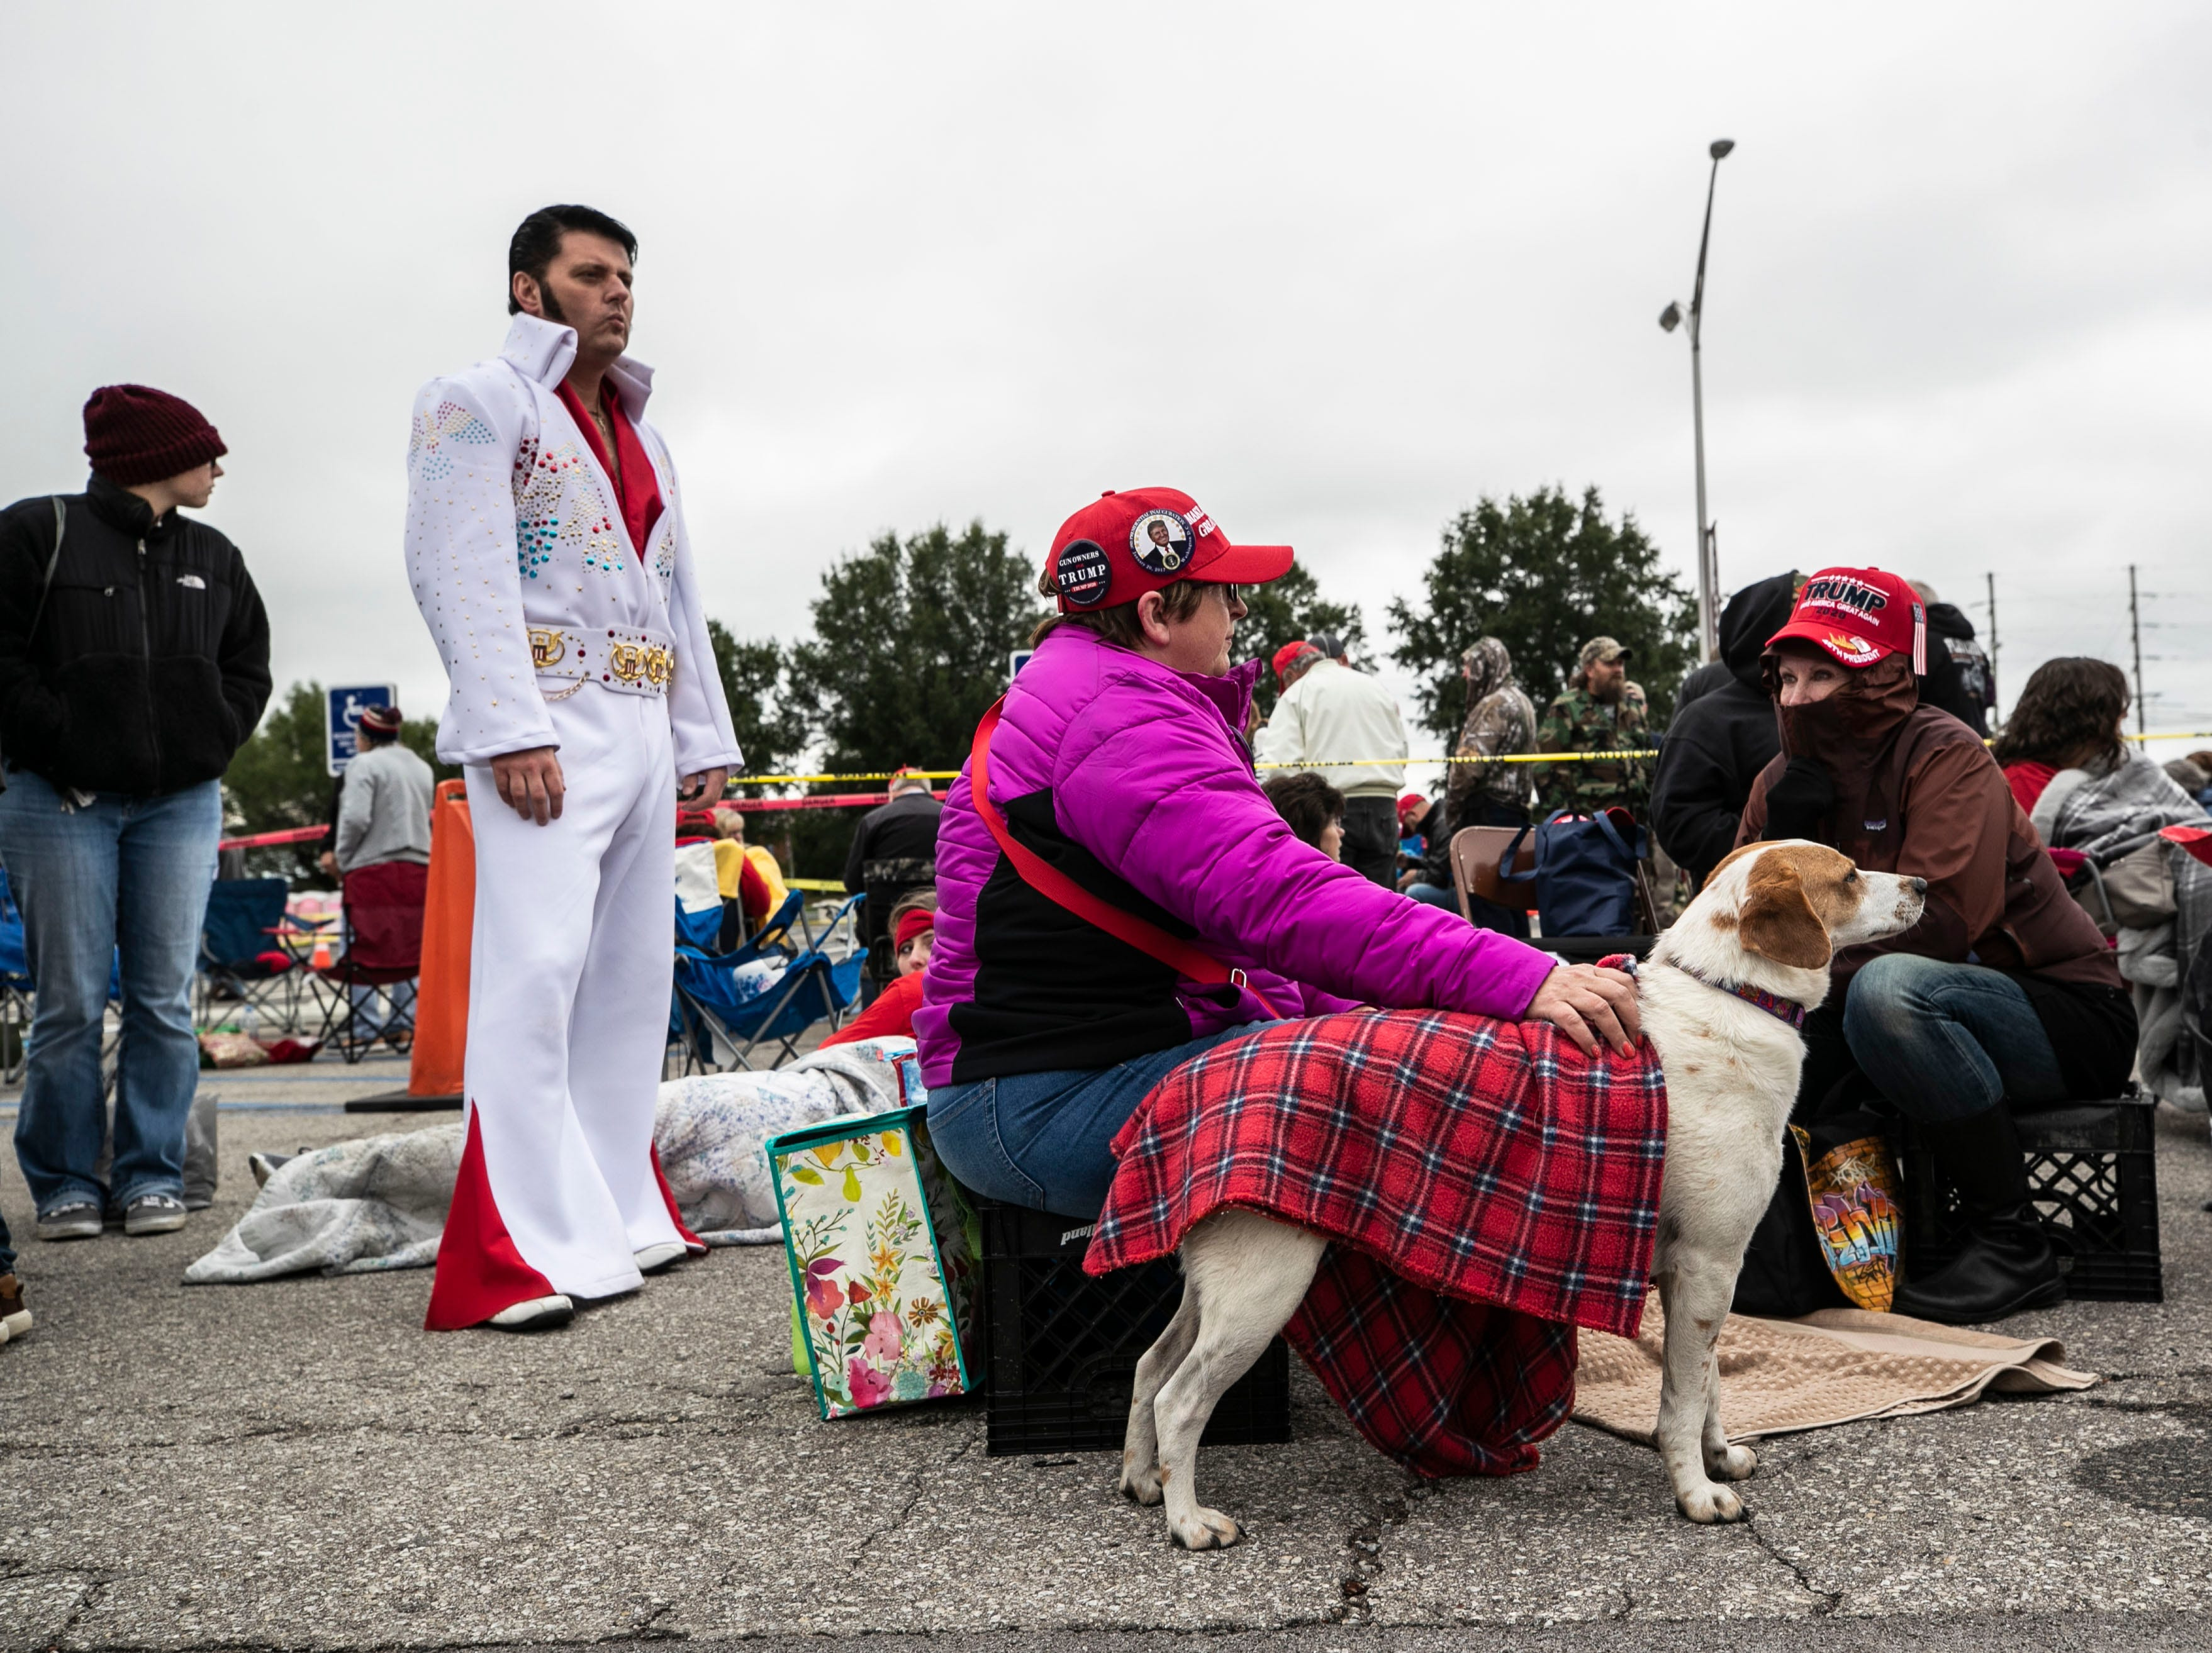 Elvis impersonator Barry Lockard waits with others -- some who brought pets -- in a parking lot outside the Alumni Coliseum for the speech of President Donald Trump Saturday night.